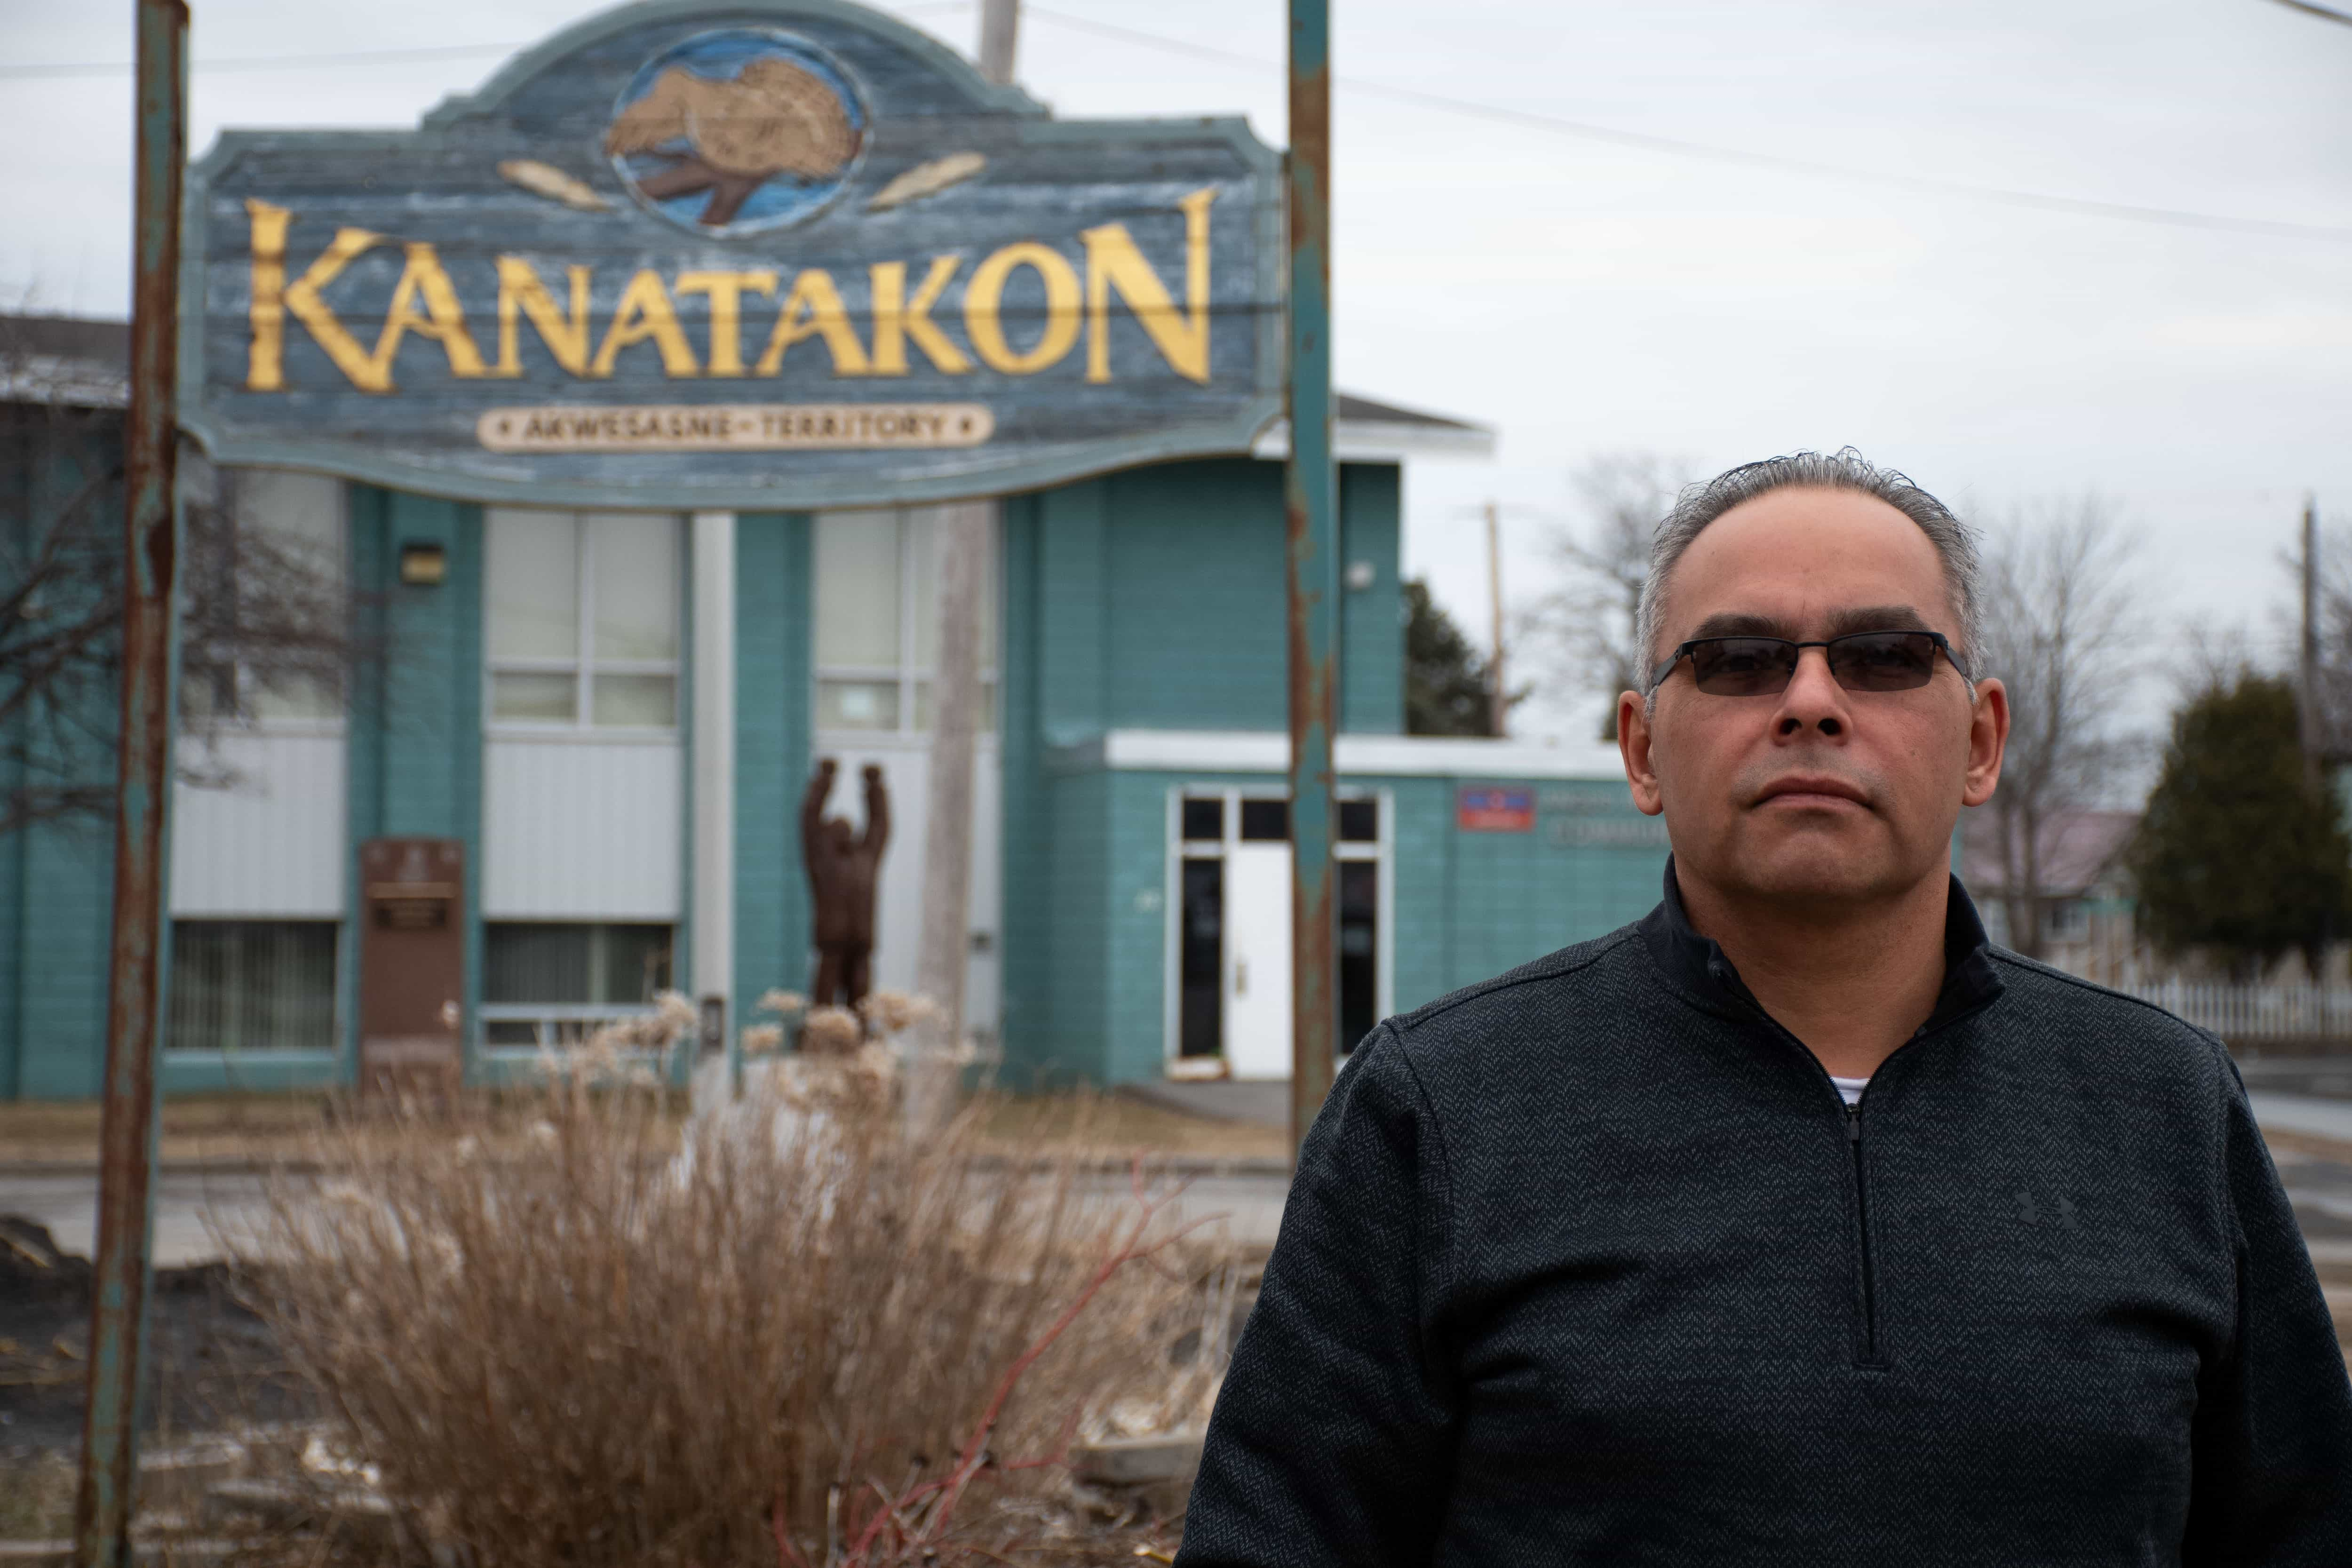 Darryl Lazore, a chief of the Mohawk Council of Akwesasne, stands on the unofficial border between the Canadian and American Akwesasne border. The only sign of the sudden switch between territories is the change from miles to kilometers on speed limit signs along the road.